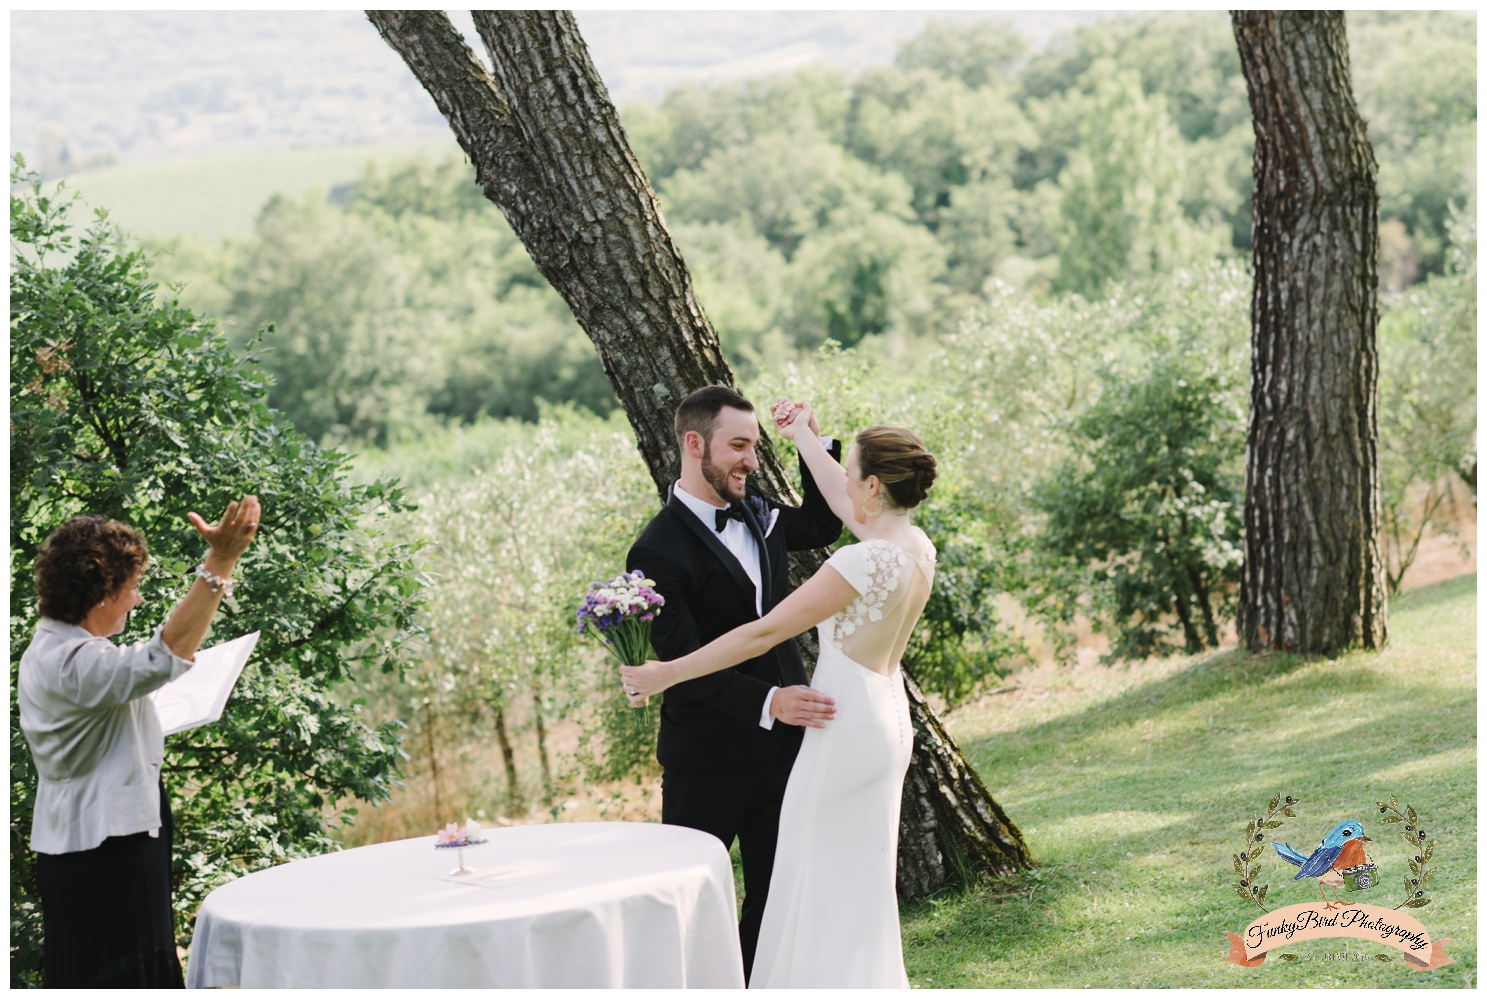 Wedding_Photographer_Tuscany_Italy_0031.jpg